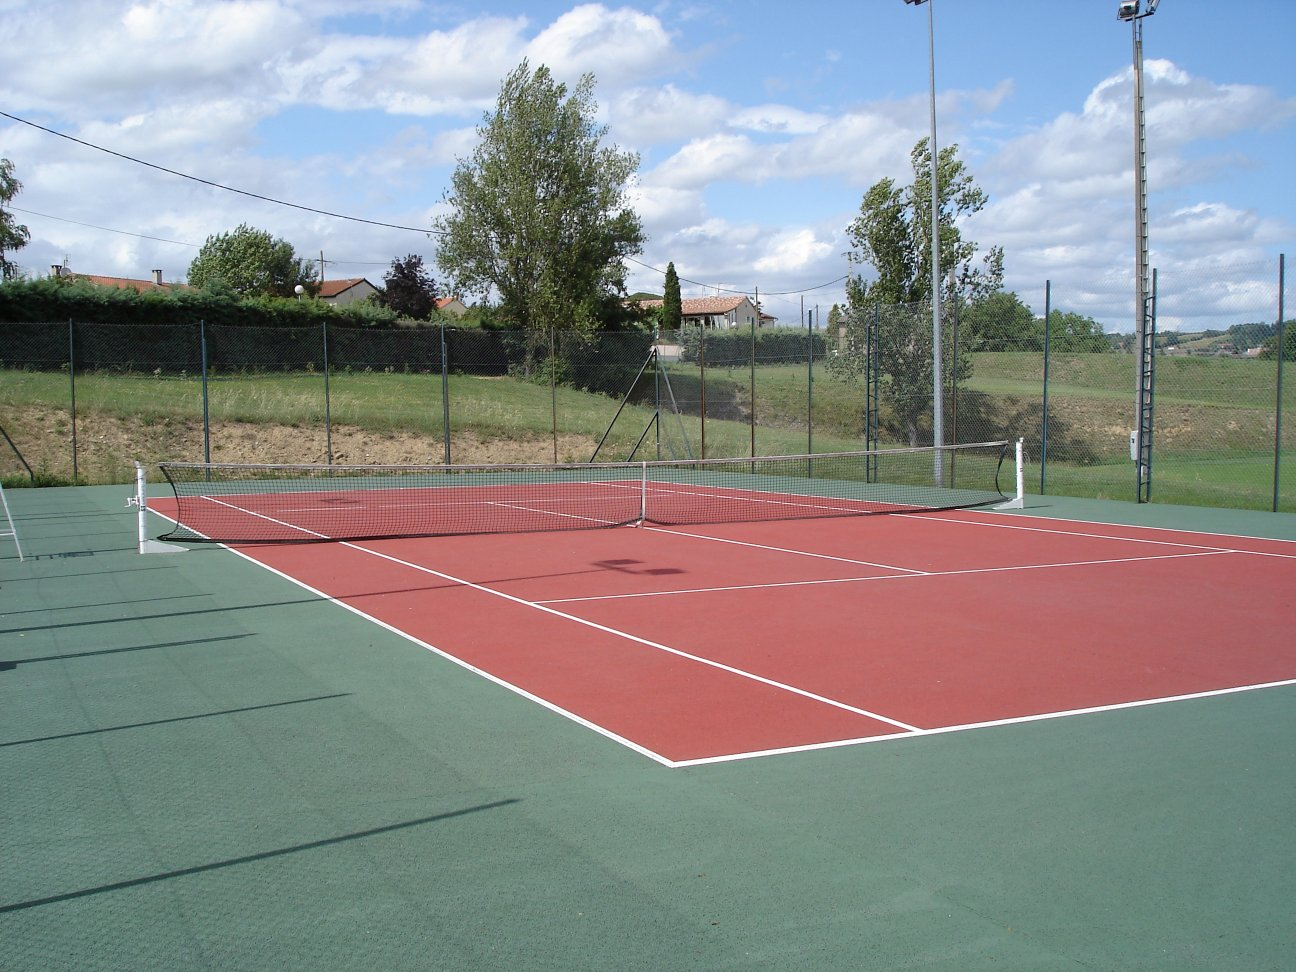 Tennis club r almontais for Eclairage court de tennis exterieur